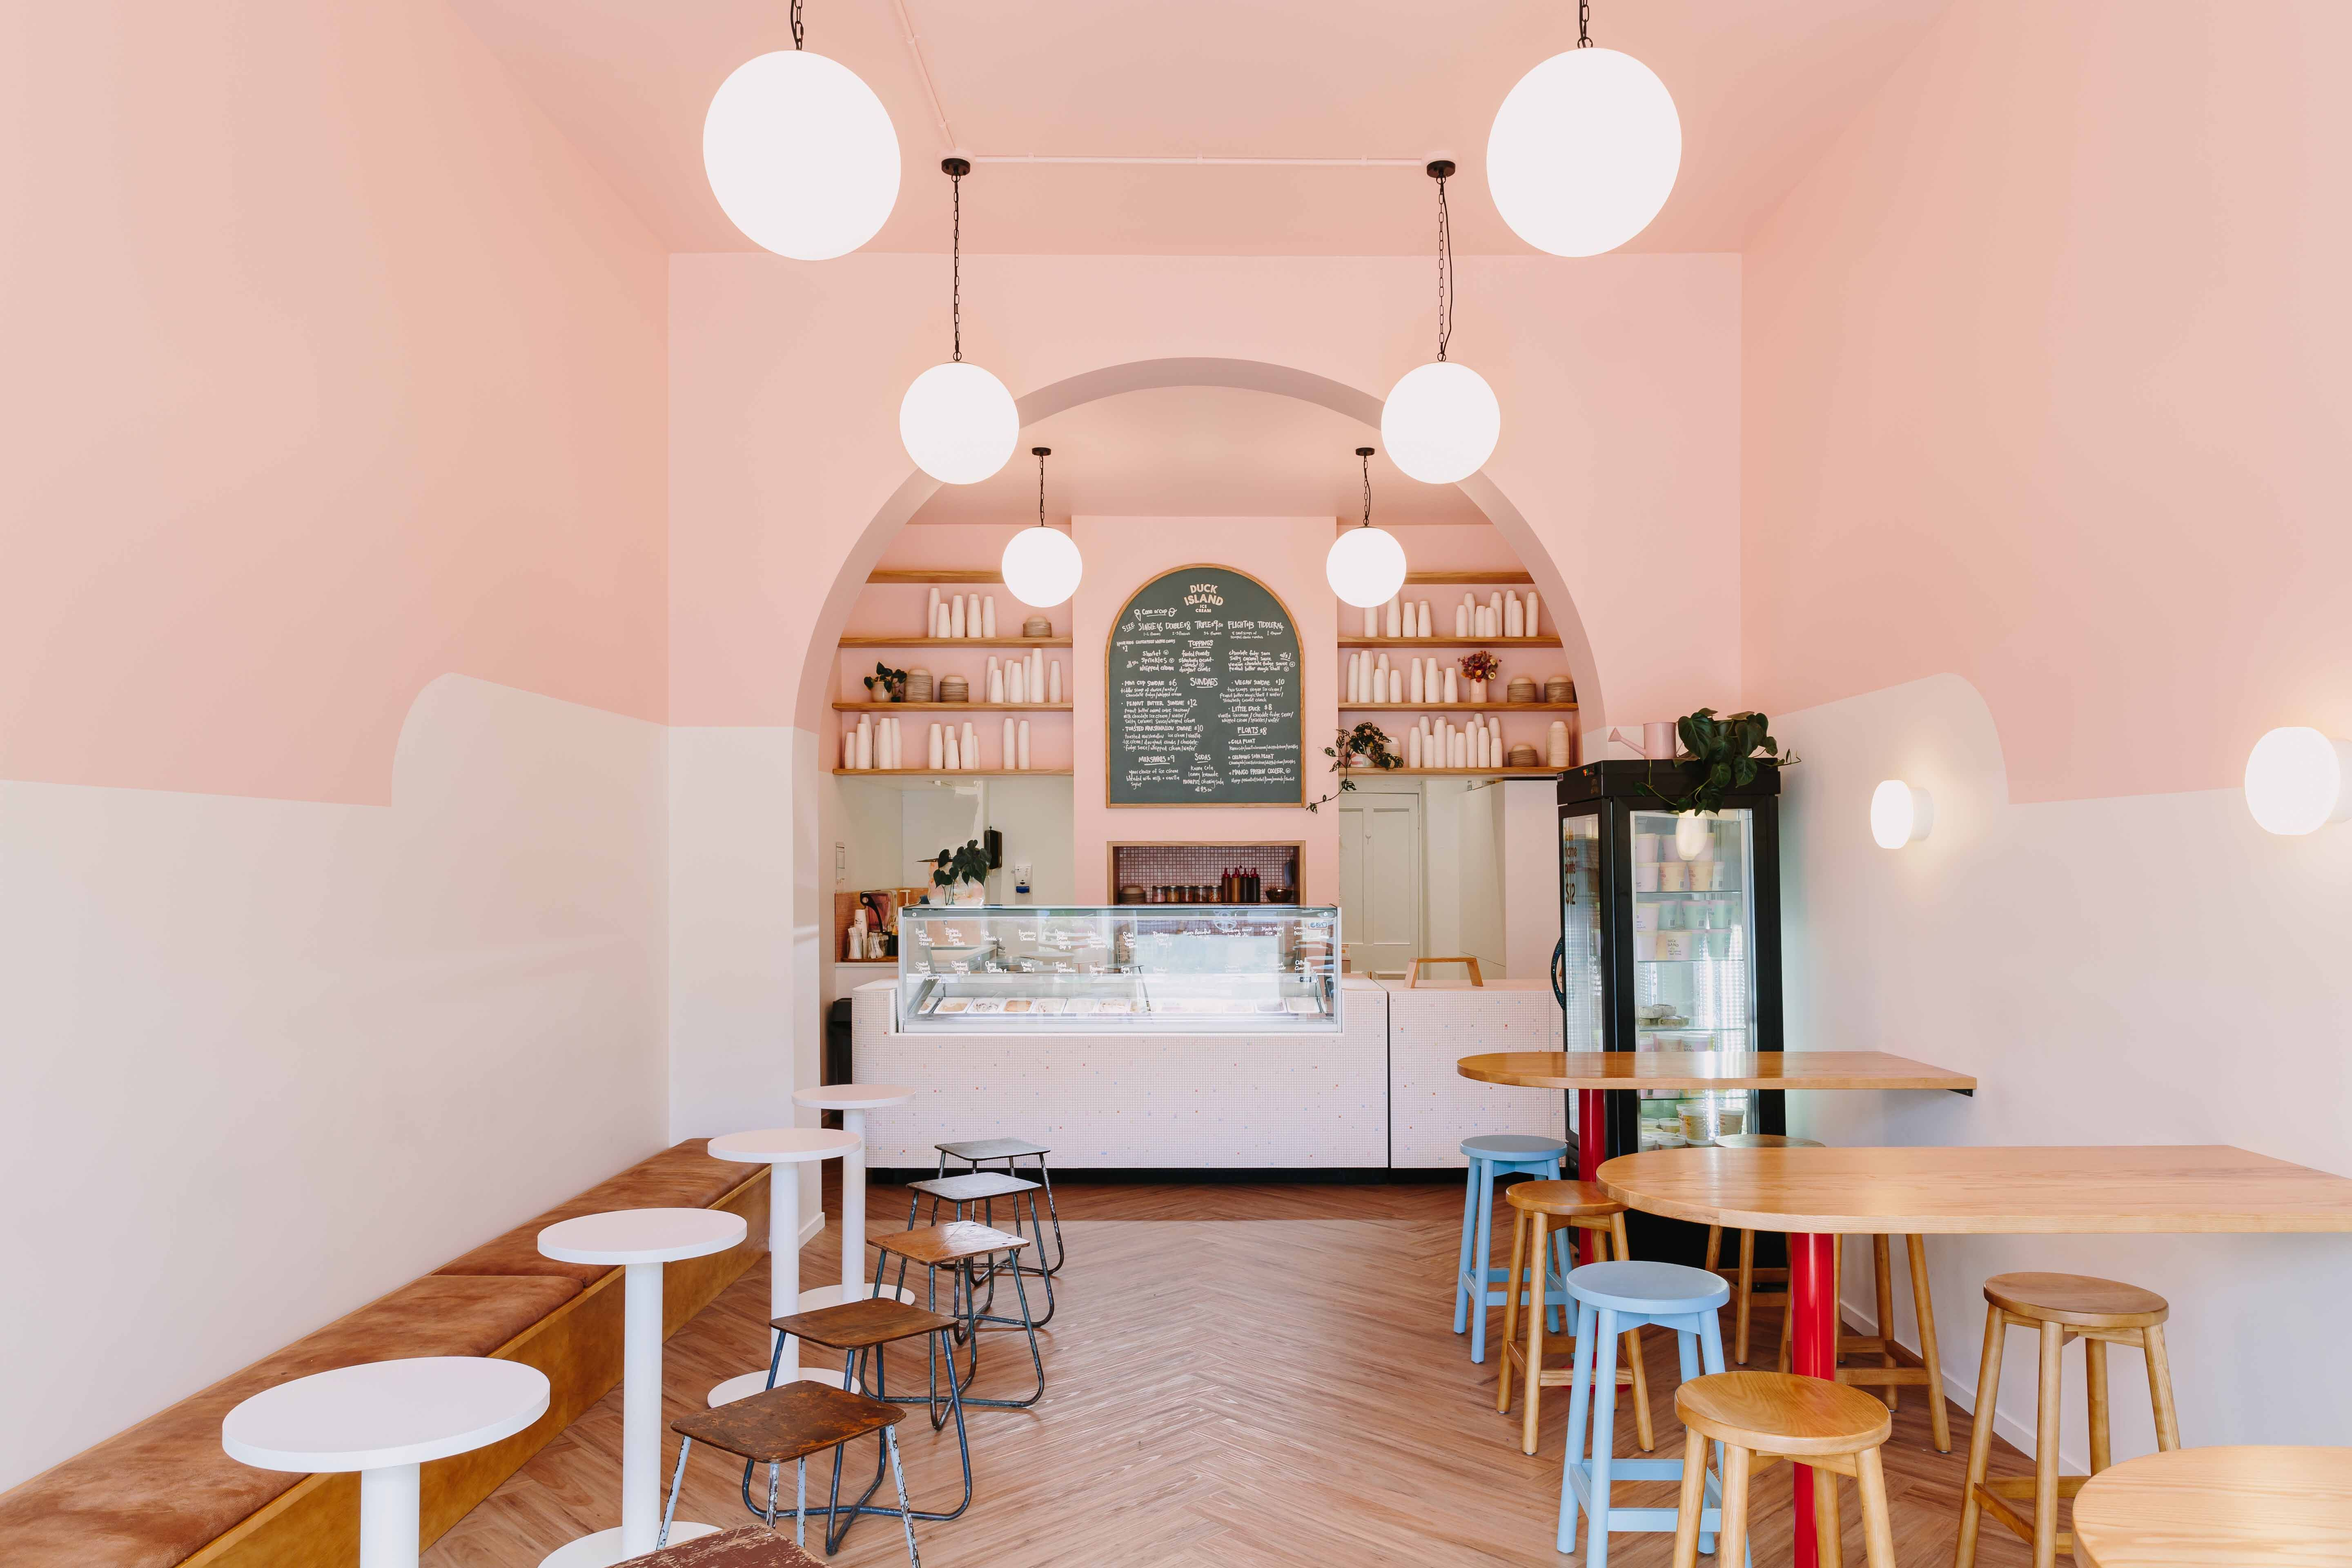 A mix of timber and bespoke laminate tops inside the scoop shop